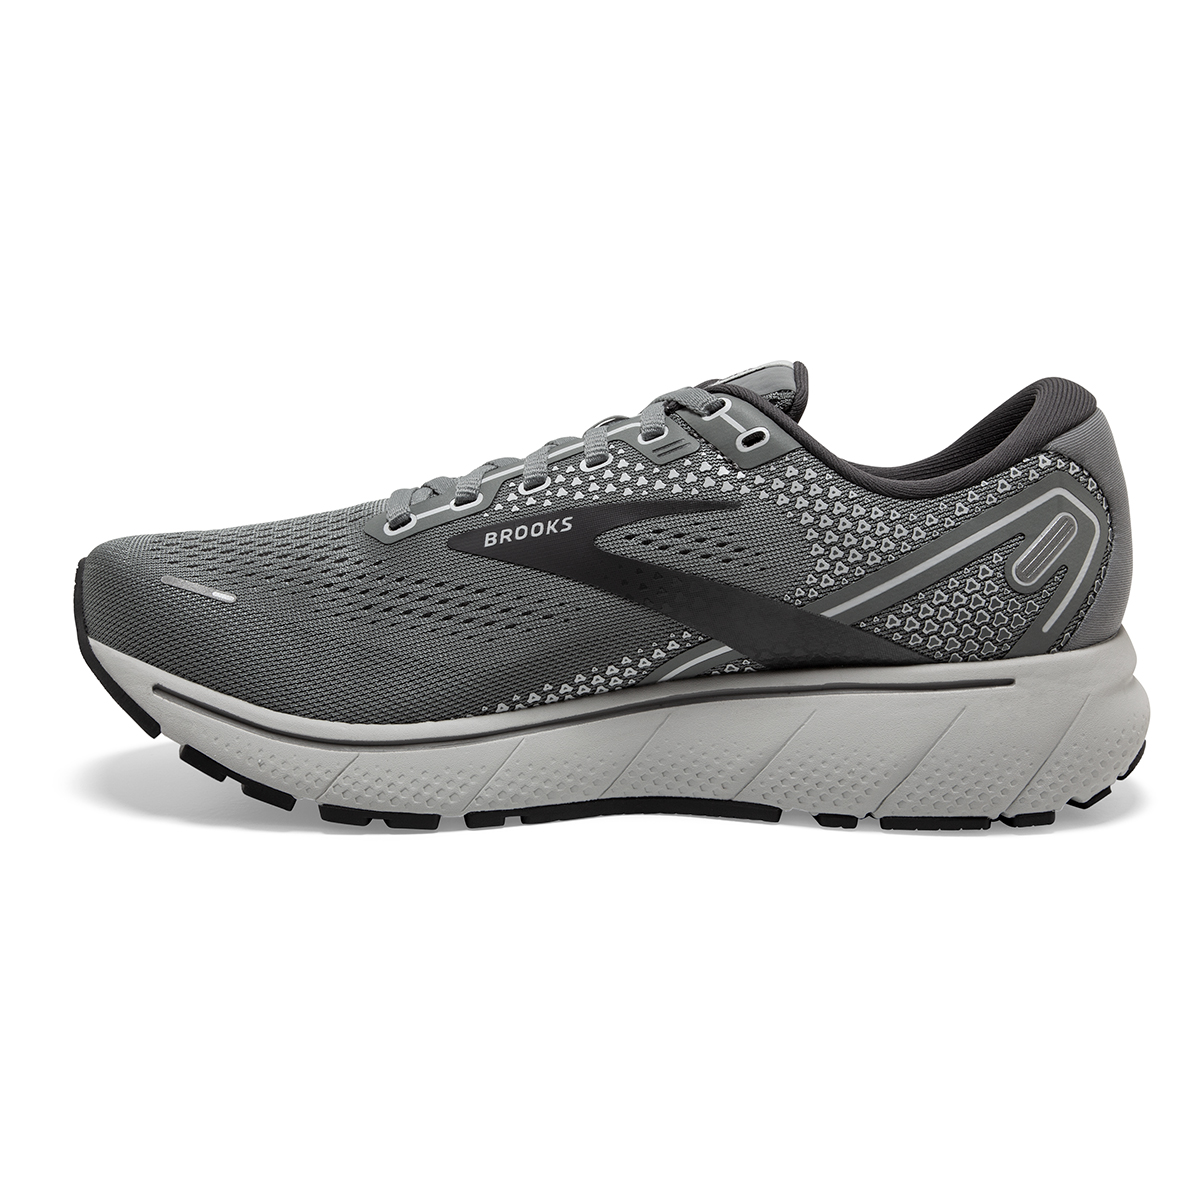 Men's Brooks Ghost 14 Running Shoe - Color: Grey/Alloy/Oyster - Size: 8 - Width: Extra Wide, Grey/Alloy/Oyster, large, image 2